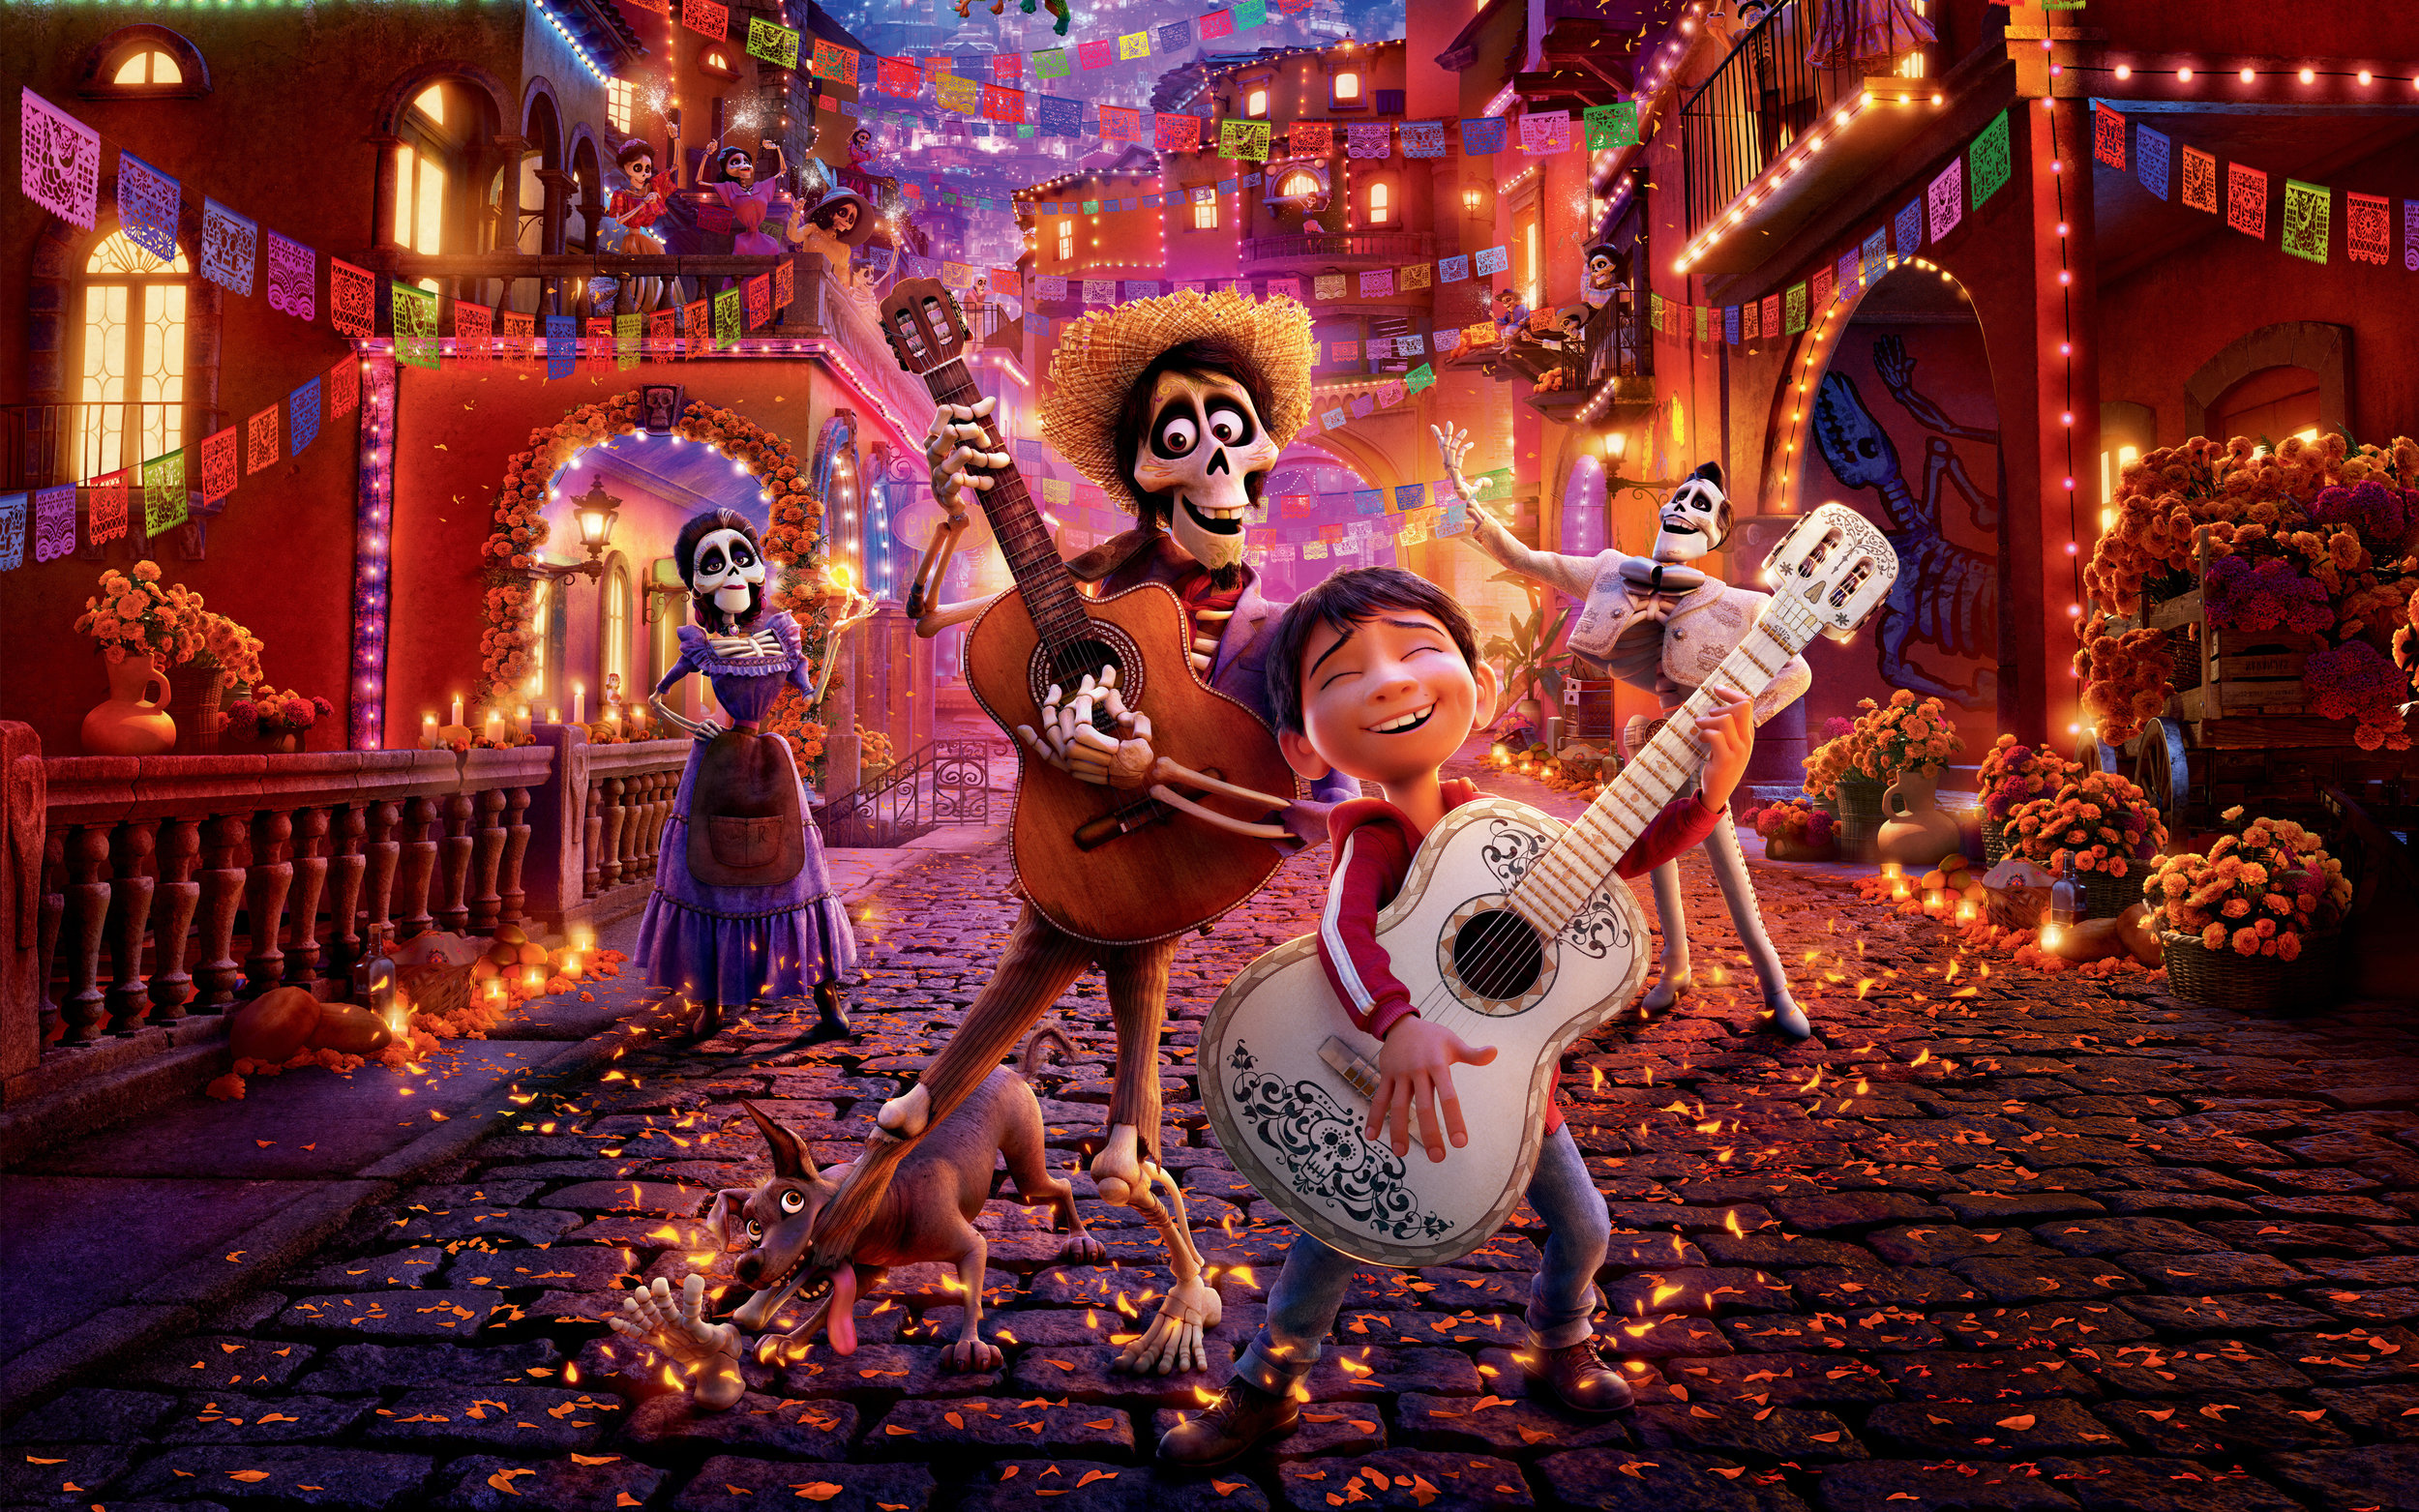 coco_pixar_animation_4k_8k-wide